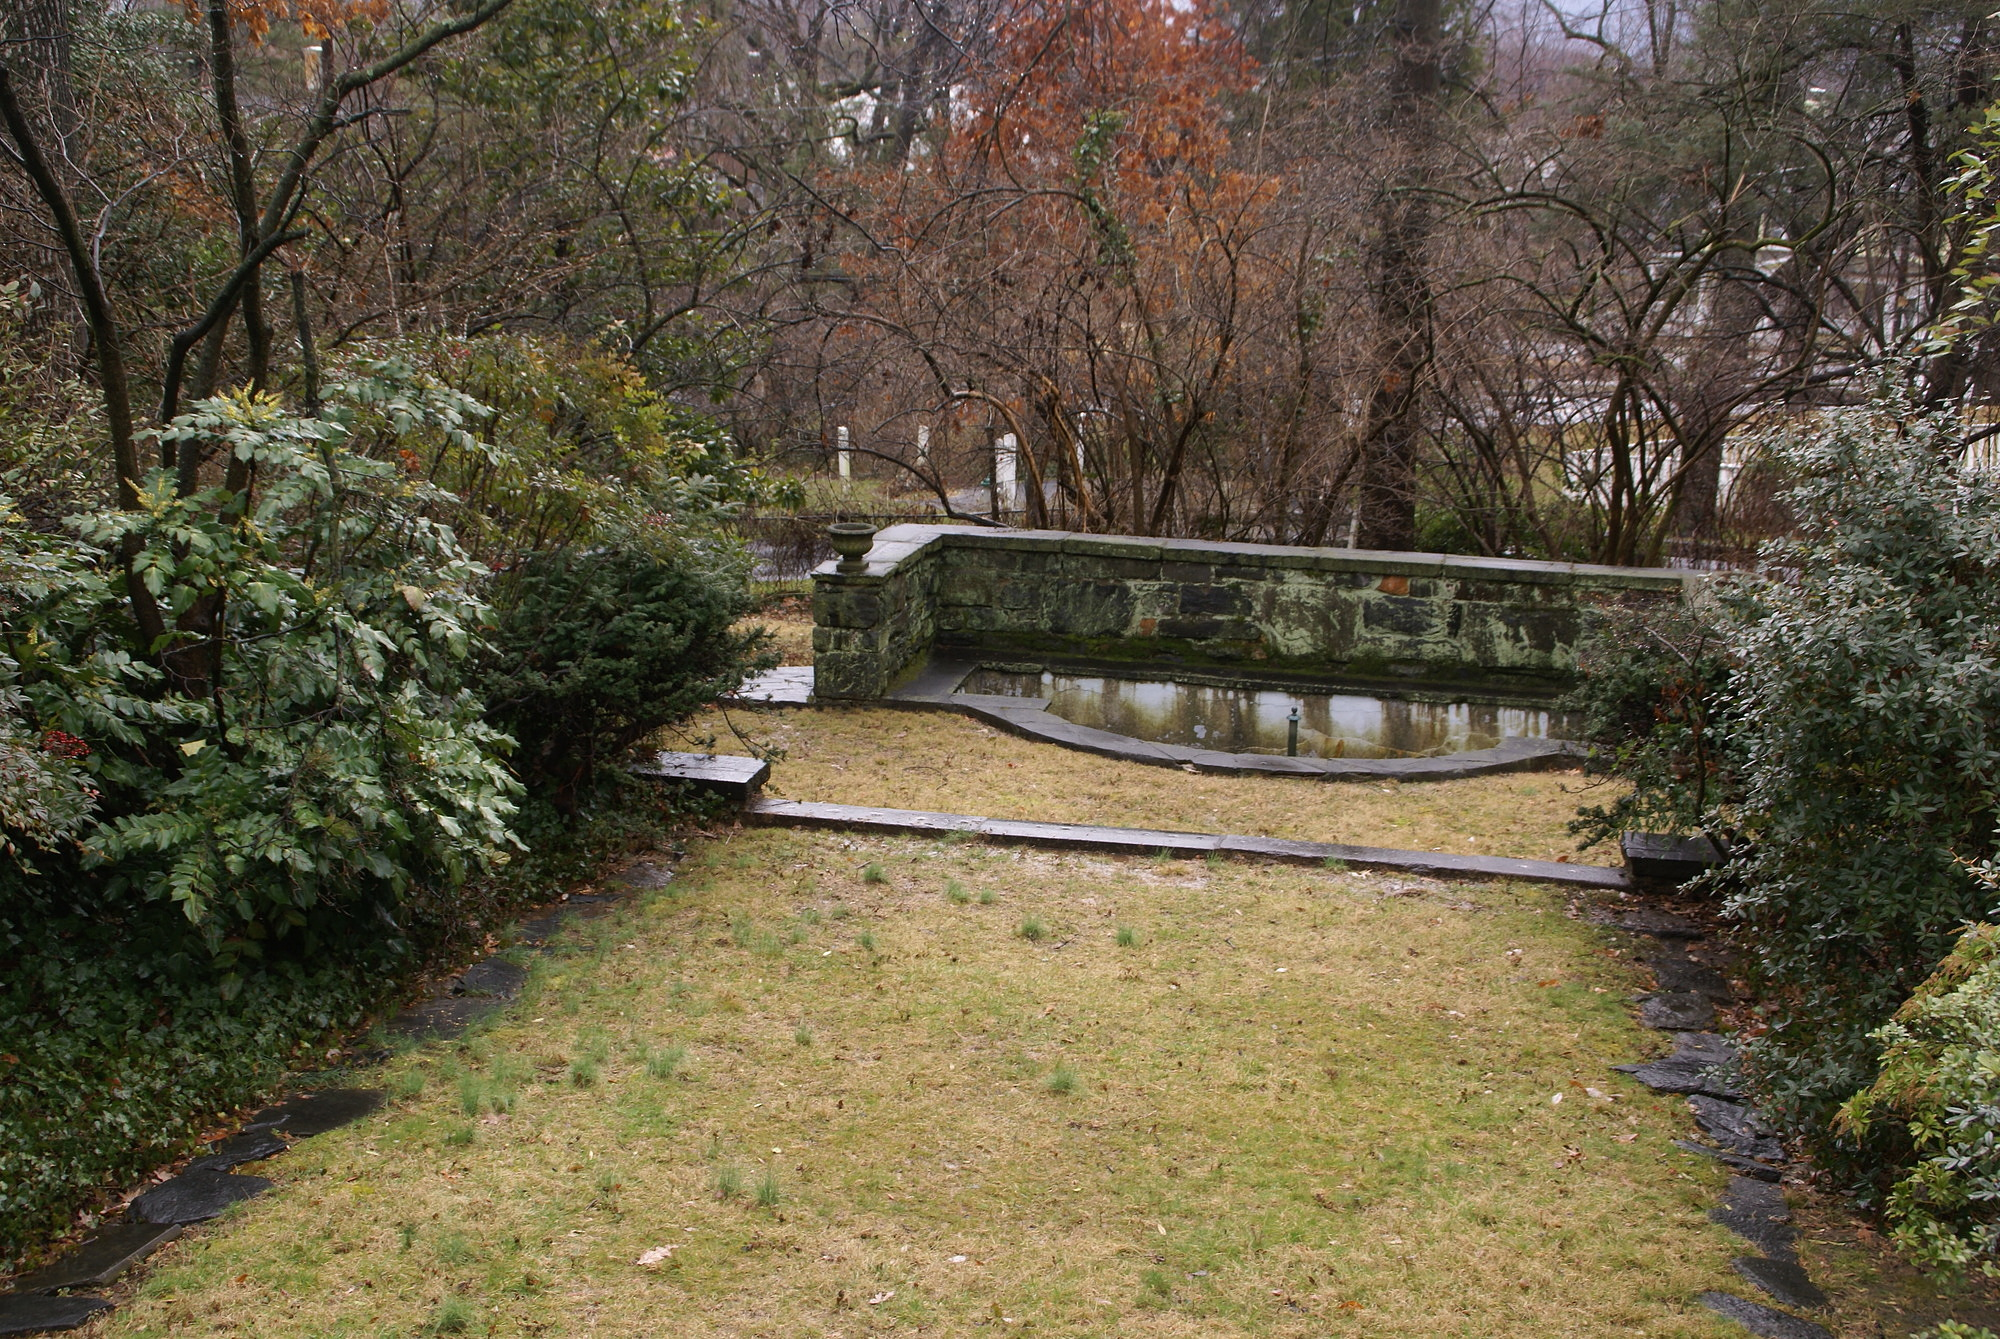 [Marsh Garden]: the pond is in the lowest terrace of the walled garden.